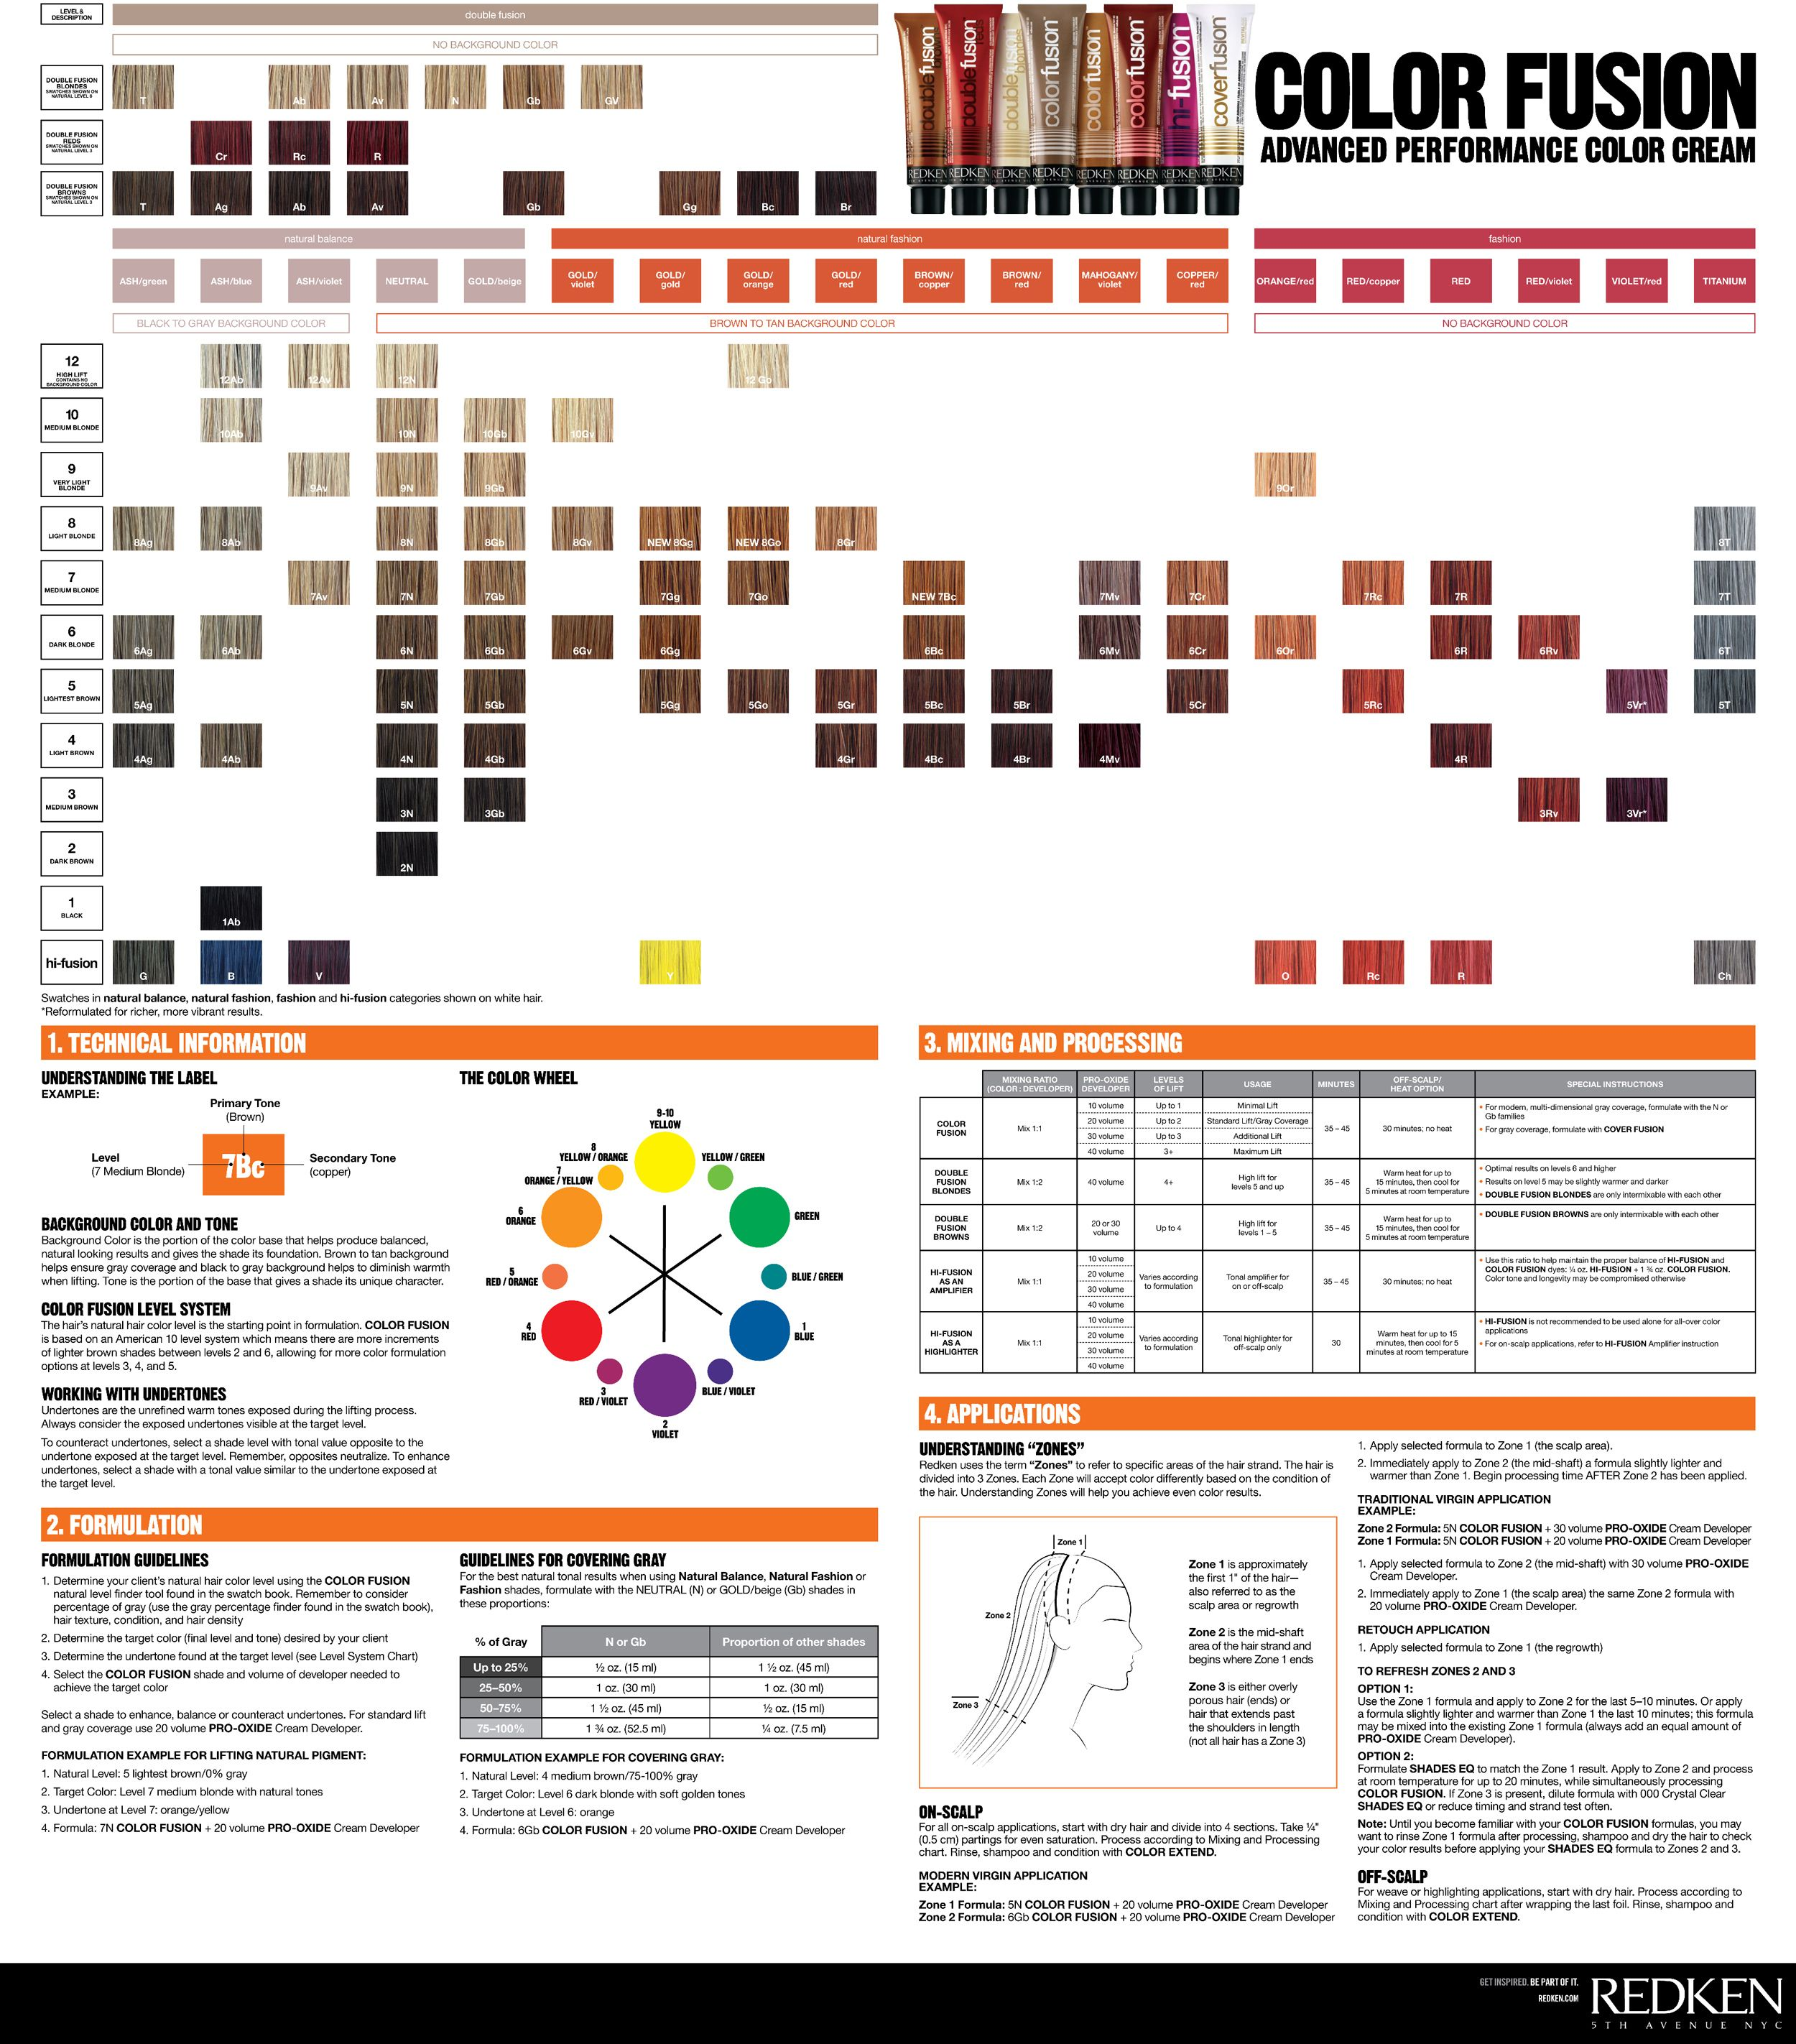 Disclosed Aveda Hair Color Conversion Chart Redken Swatch Book Fusion Hair Color Chart Redk In 2020 Redken Hair Color Redken Color Fusion Chart Redken Hair Color Chart